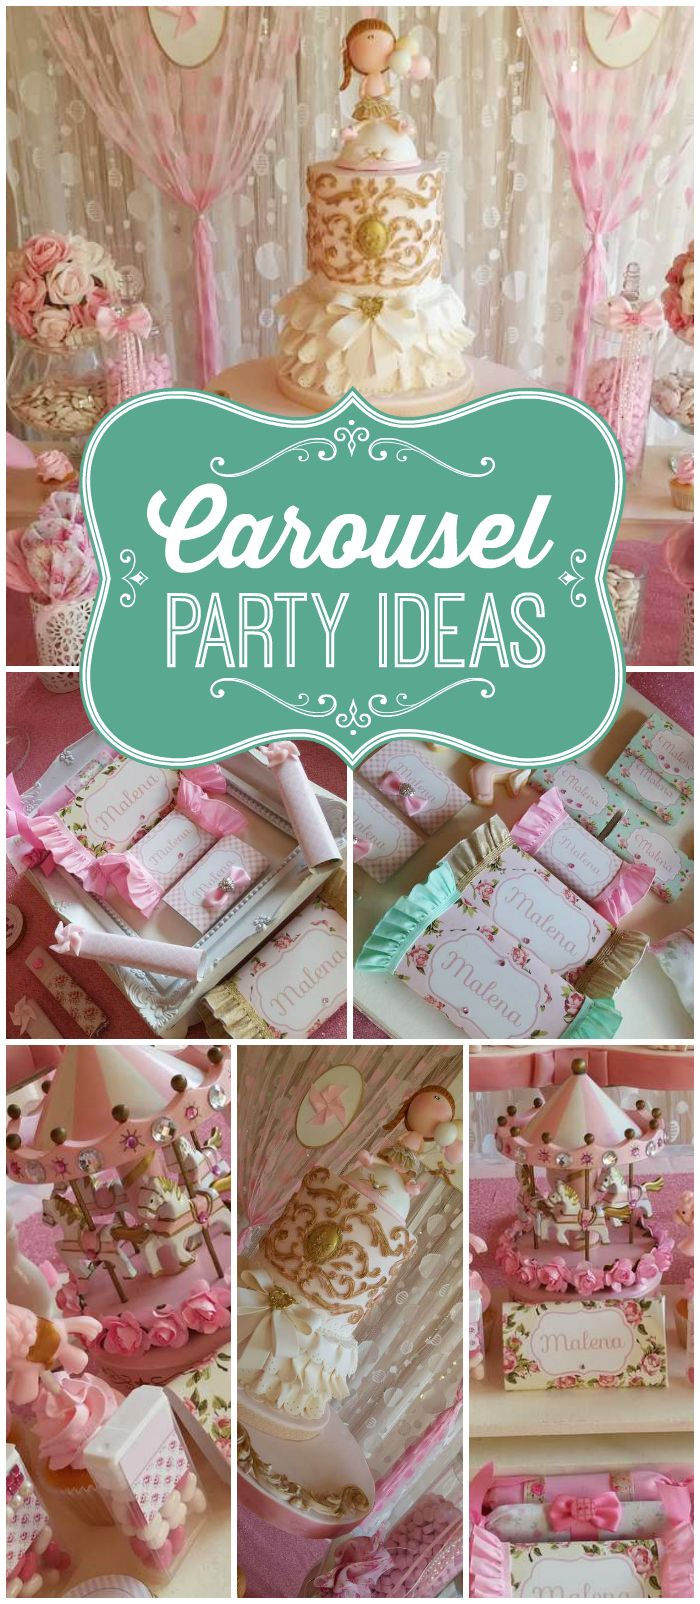 You won't believe all the details in this carousel party!